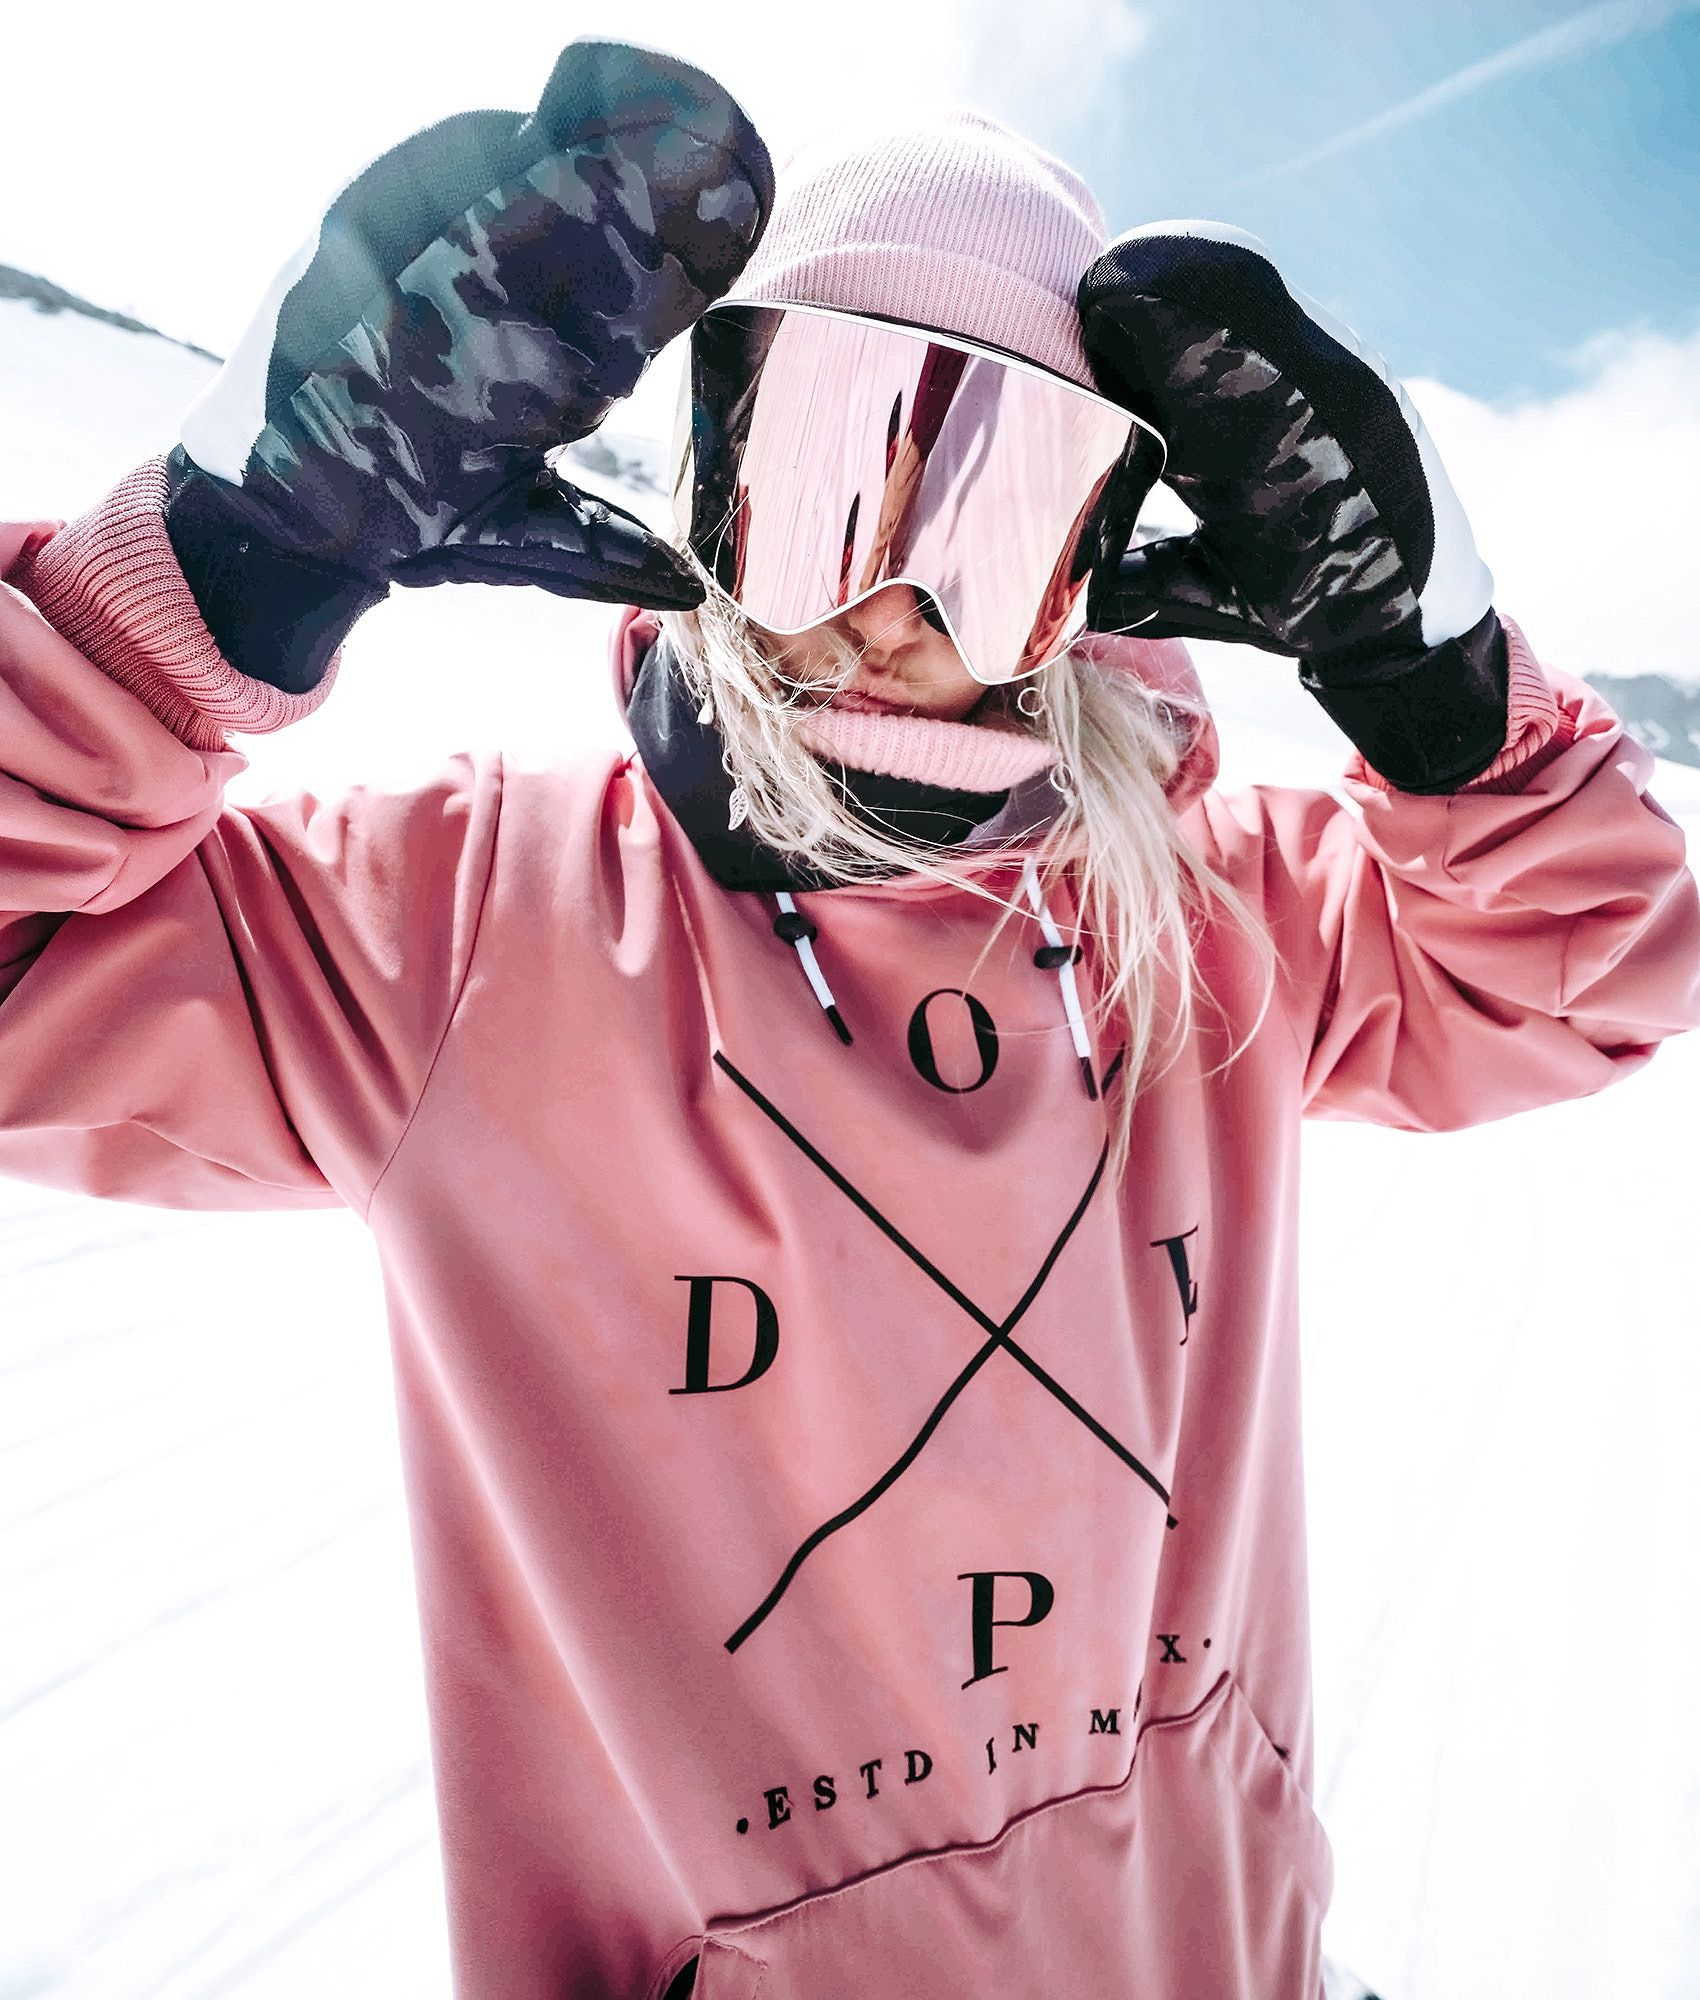 snowboarding gear womens snowboard outfit   Snowboarding